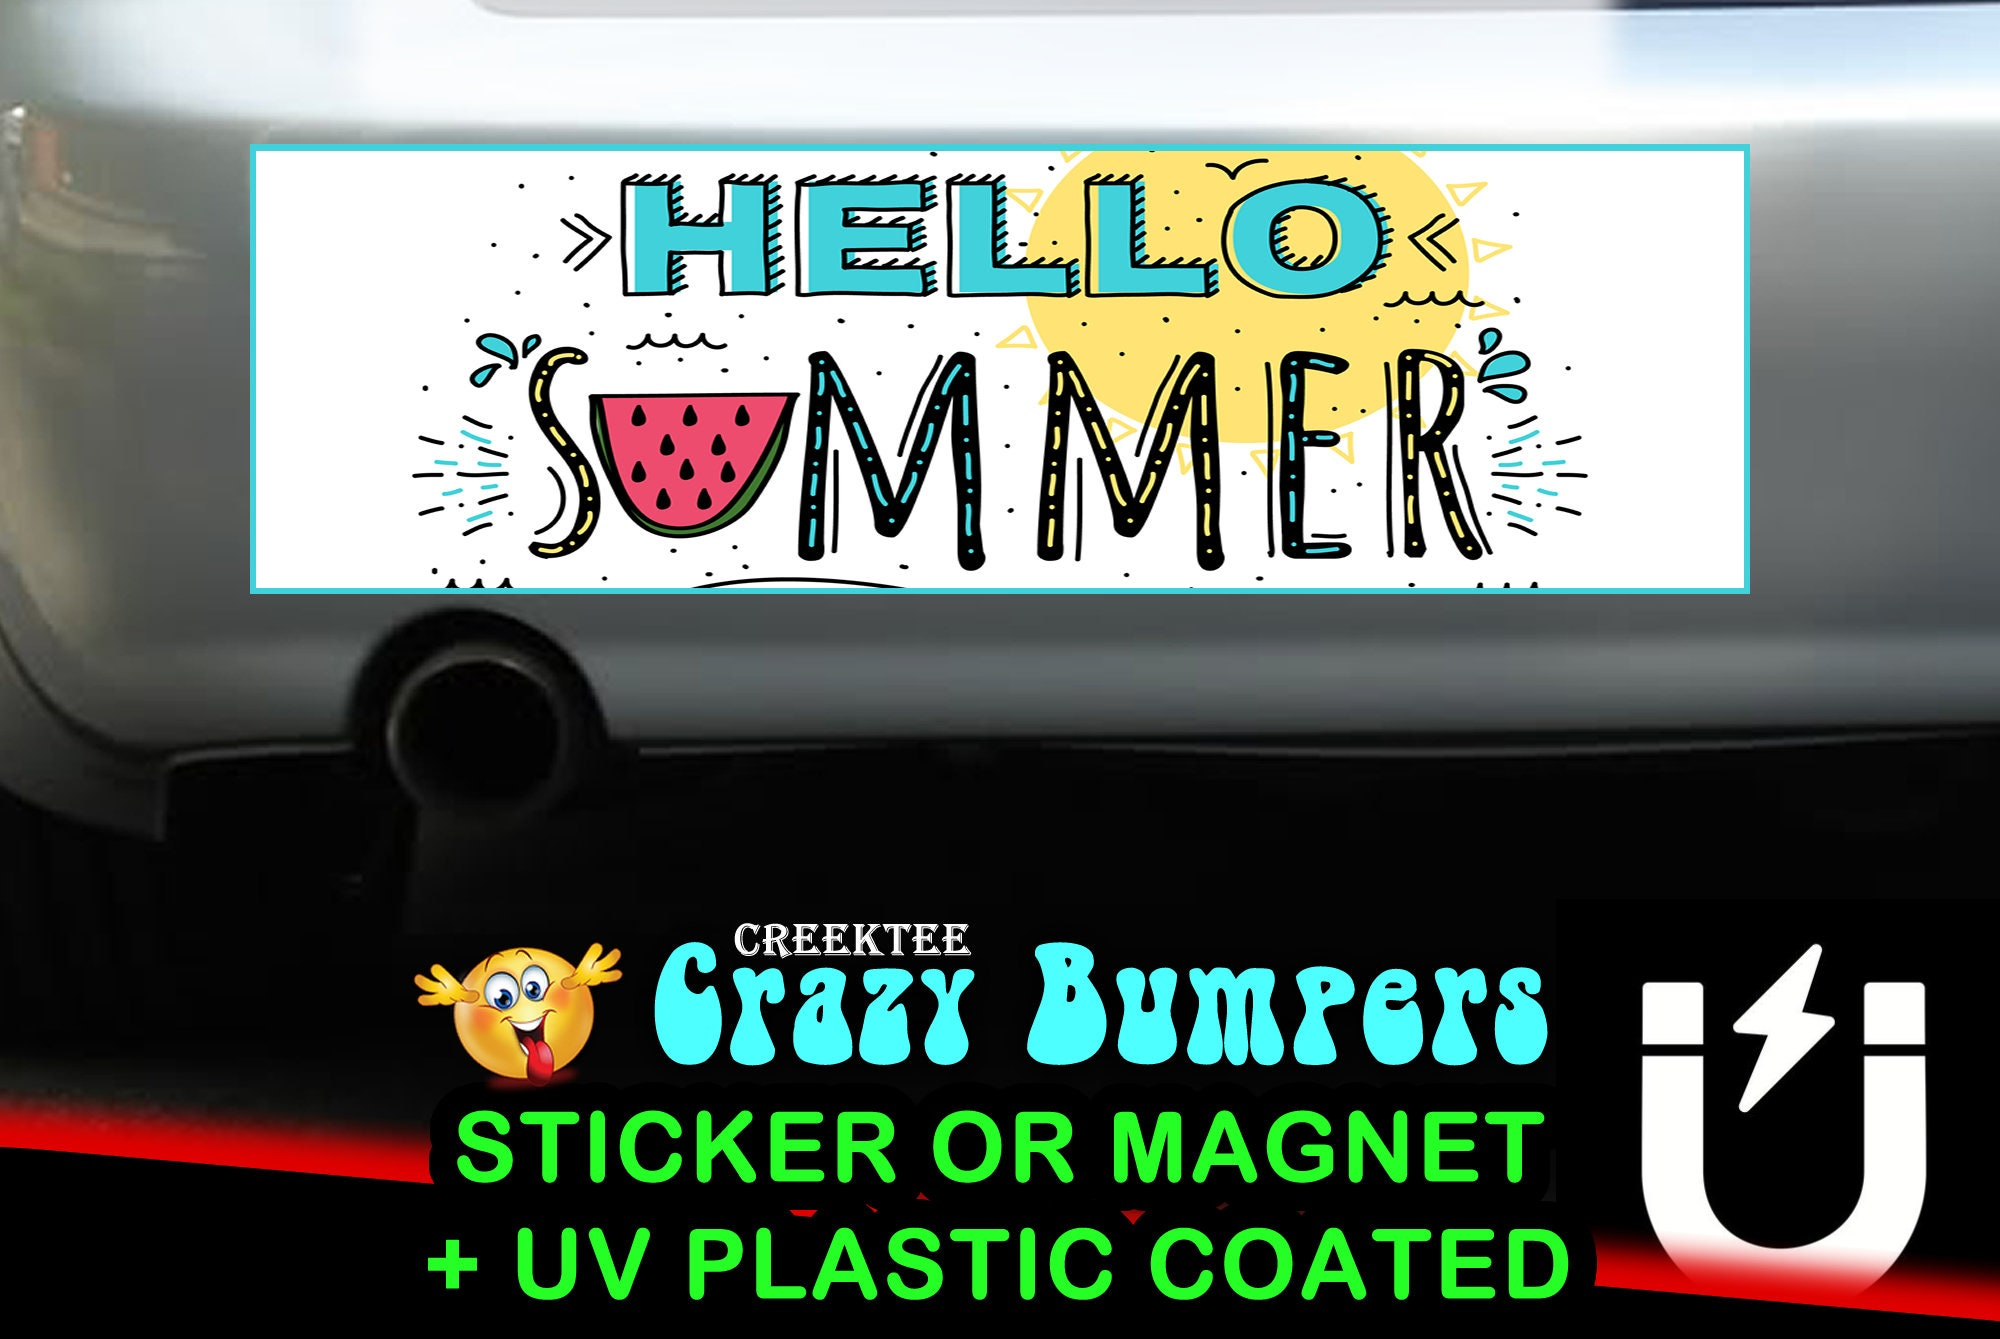 CAD$8.69 - Hello Summer bumper sticker or magnet, 9 x 2.7 or 10 x 3 Sticker Magnet or bumper sticker or bumper magnet